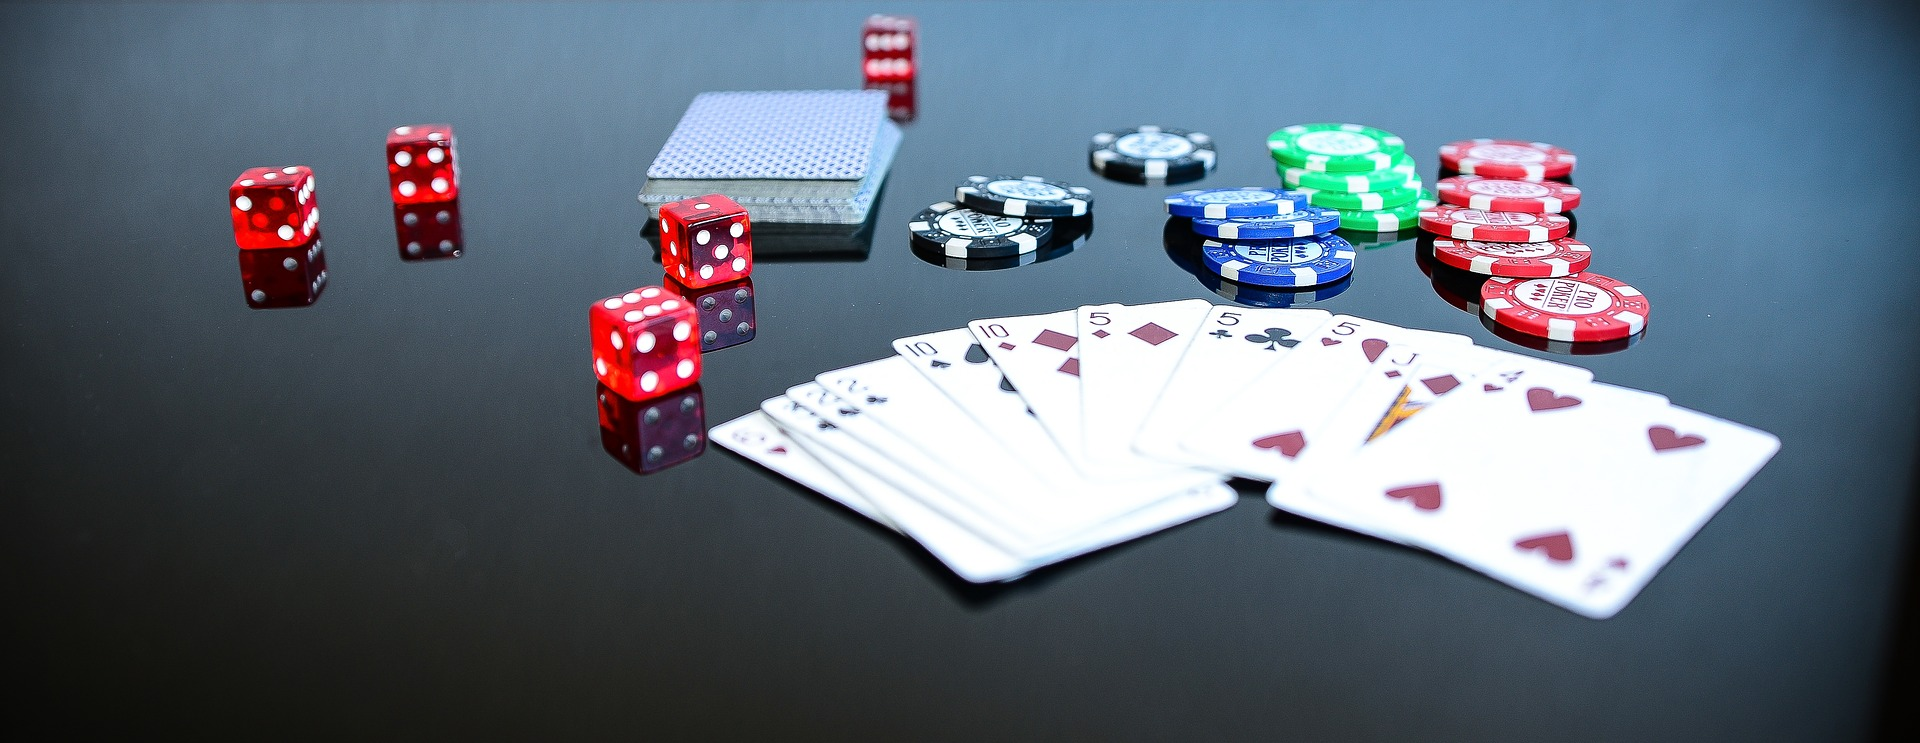 5 Point Online Casino Checklist Gambling